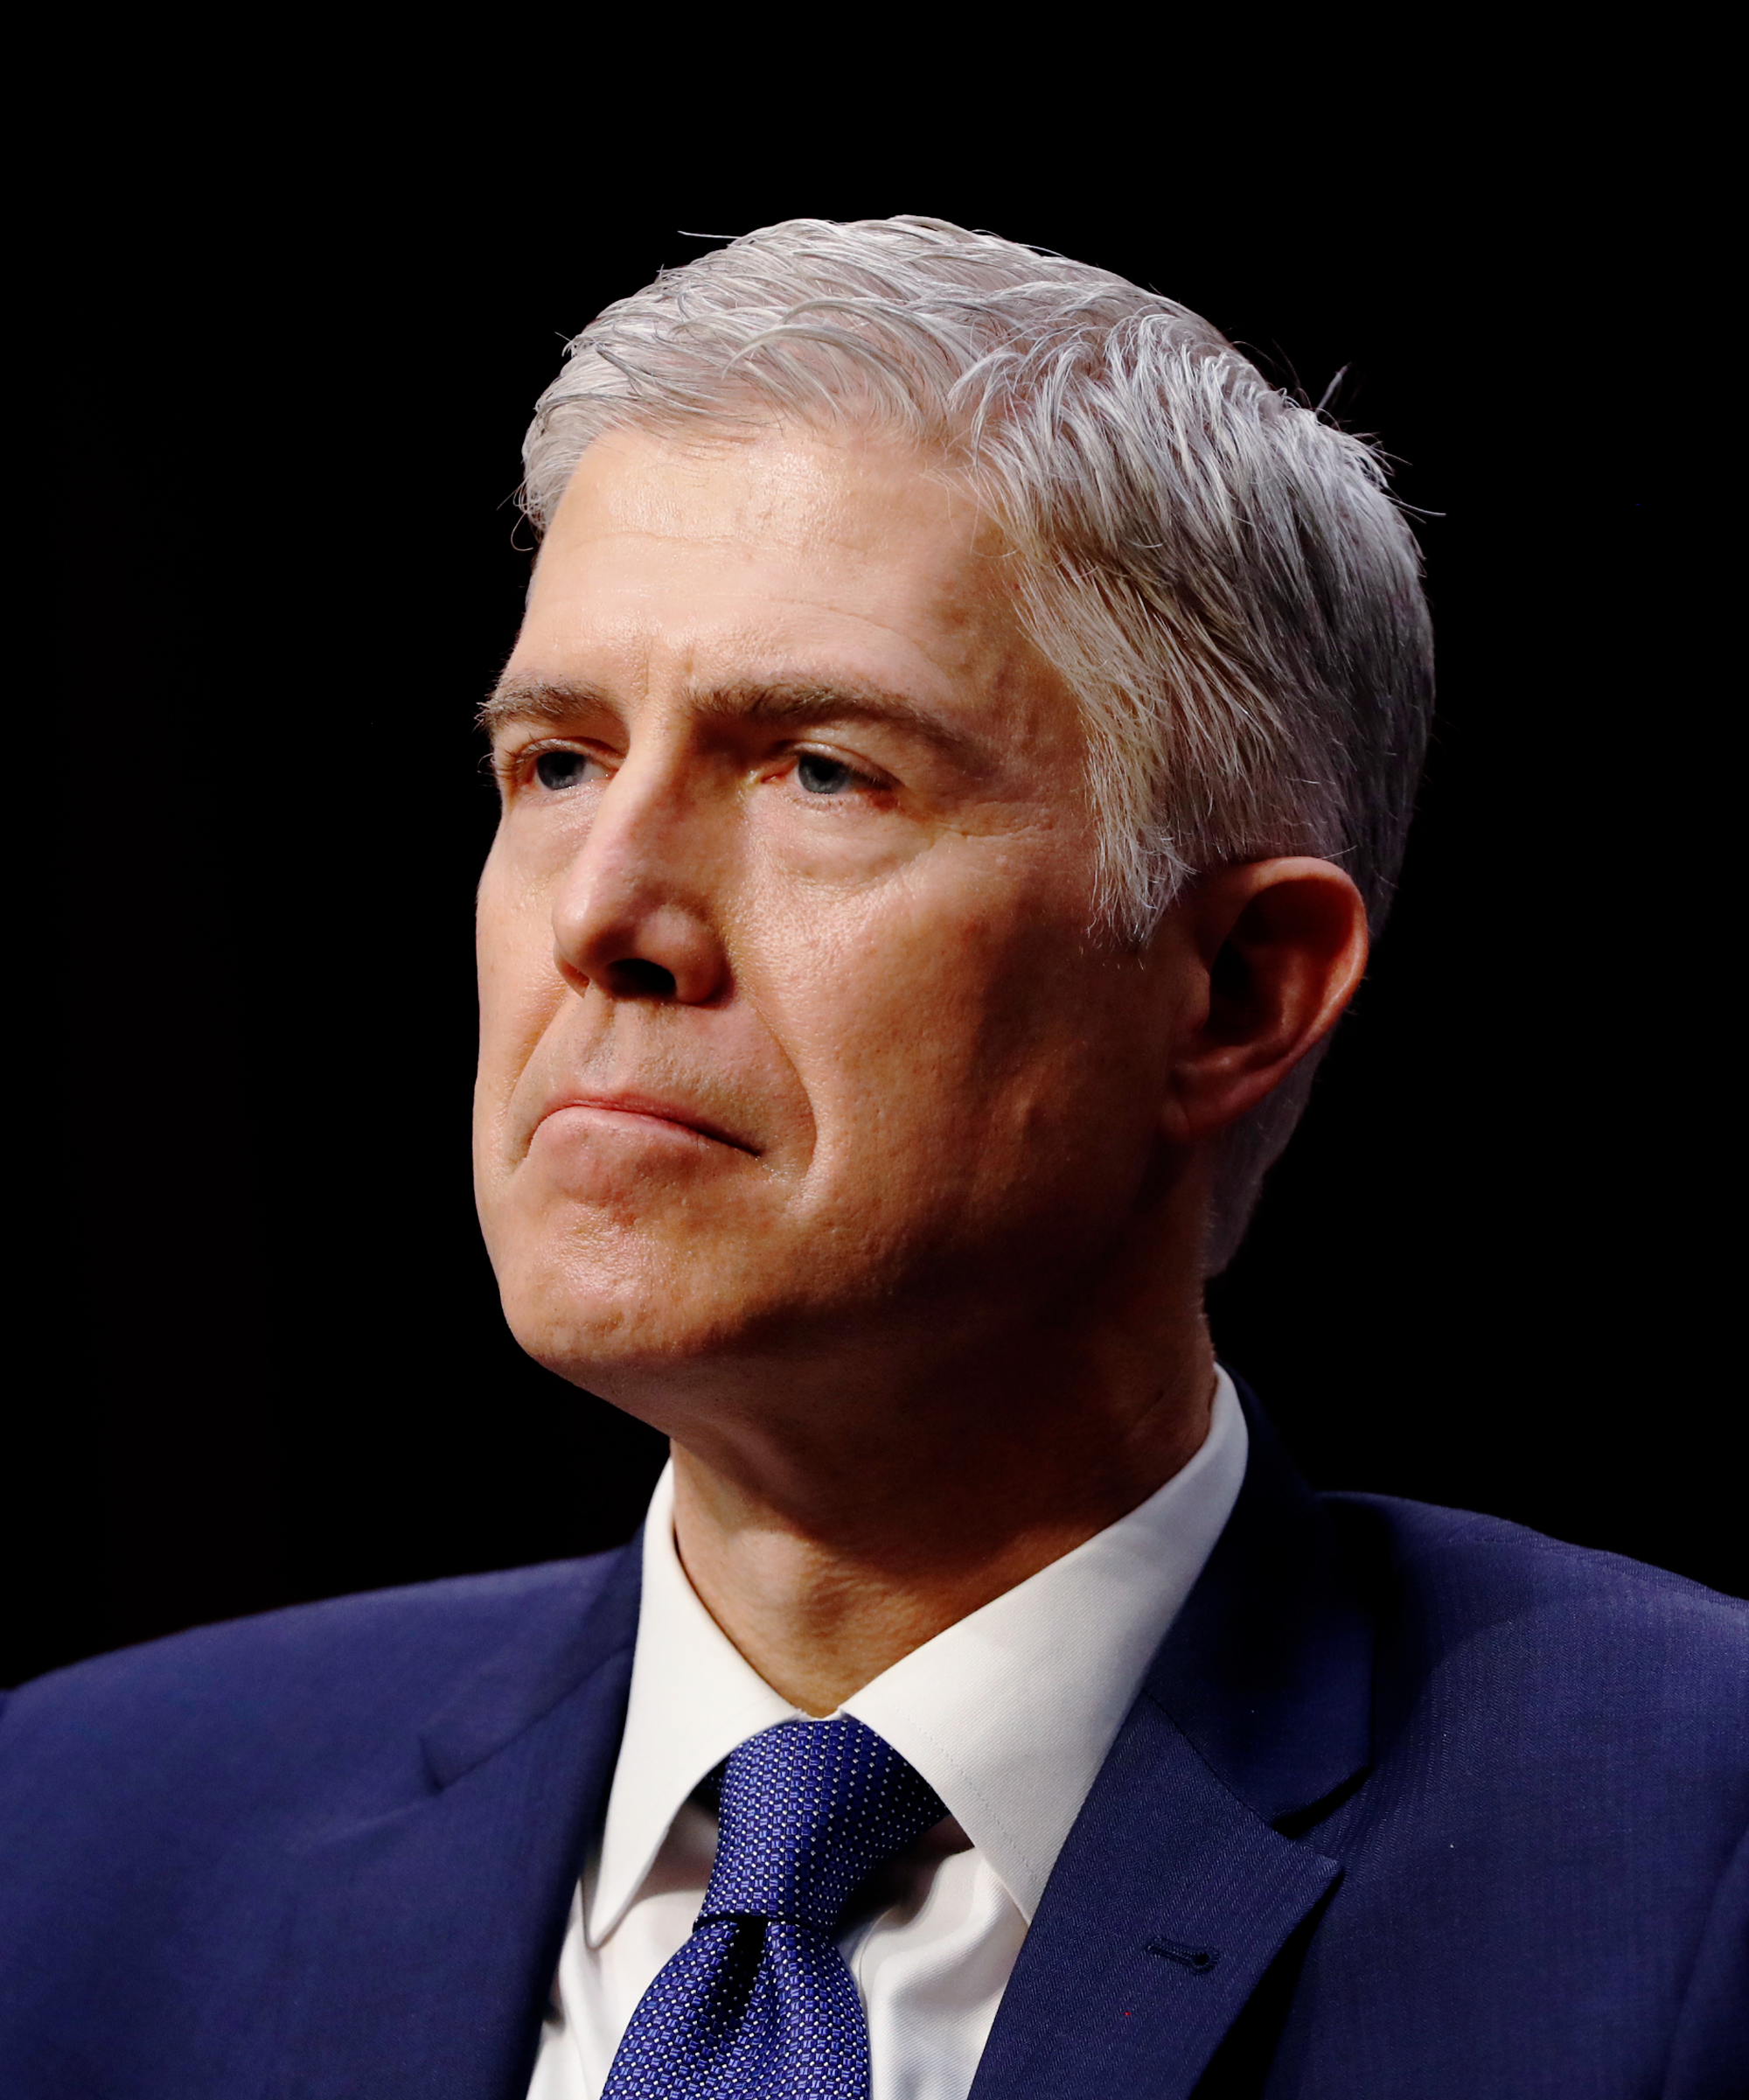 Senate approves Trump pick Gorsuch for Supreme Court